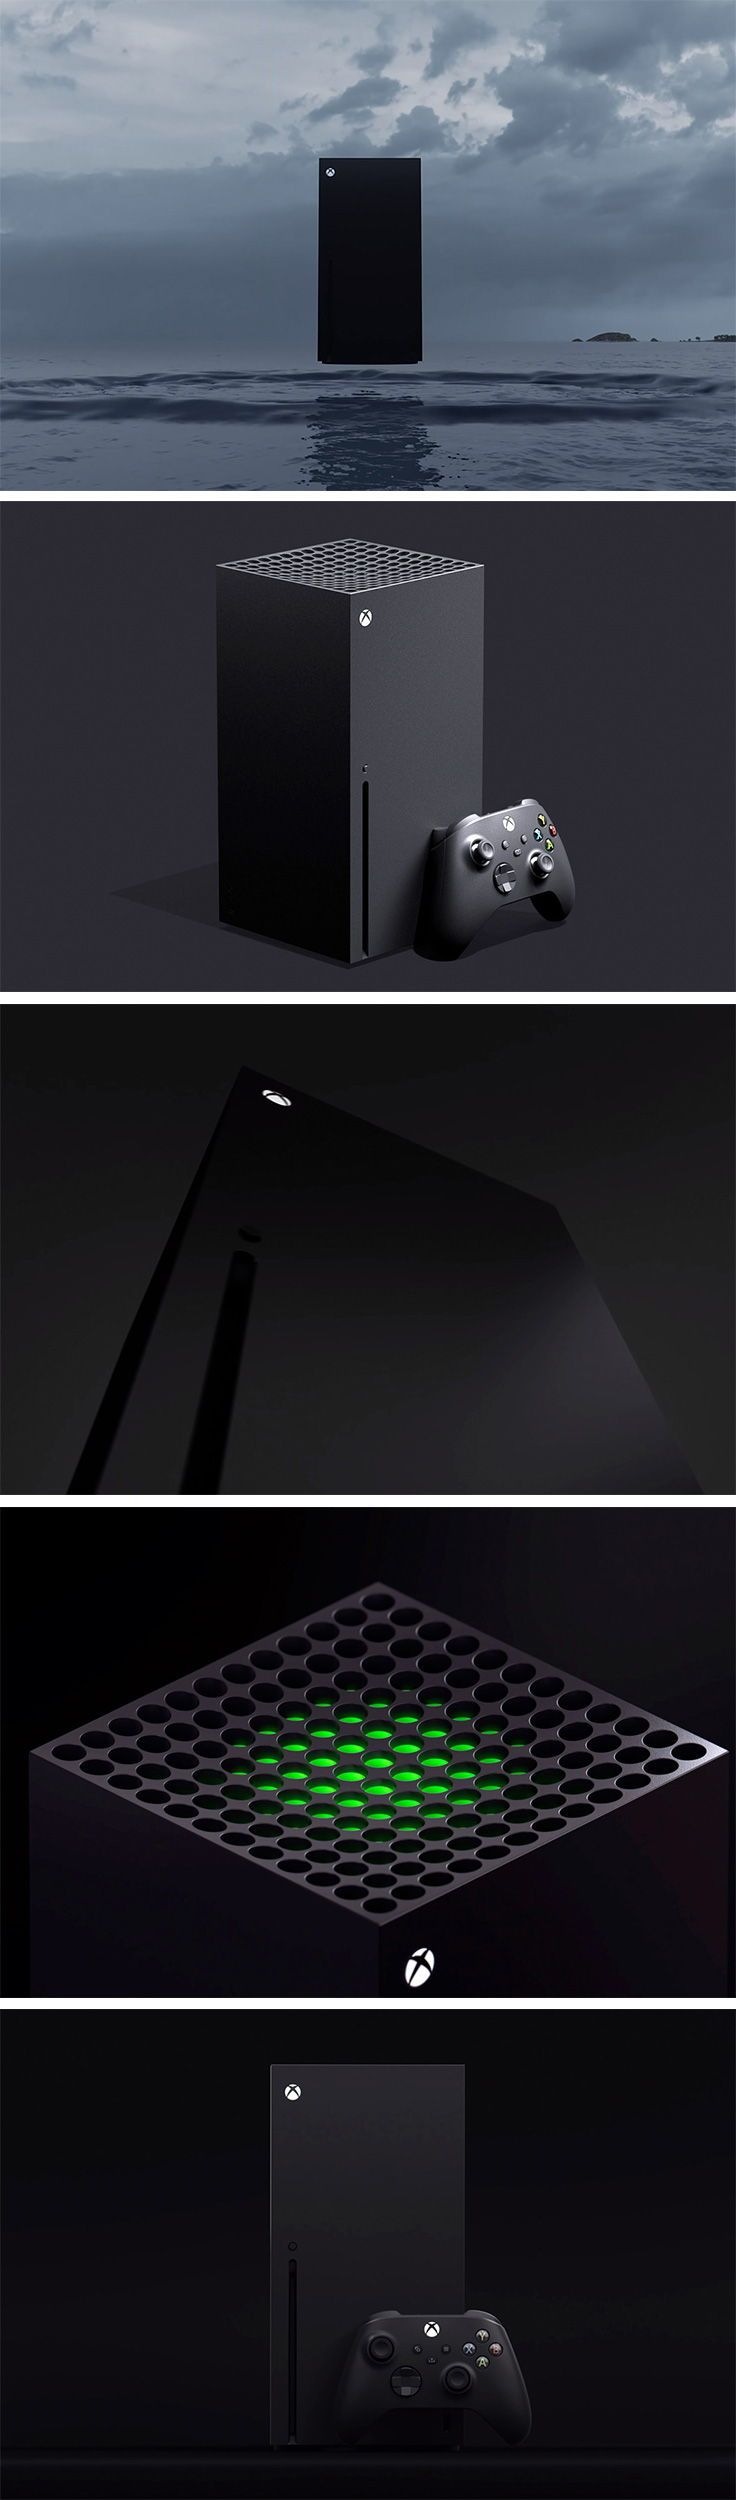 Xbox Series X Packs A Powerful Console Cool Electronics Black Box Innovation Technology